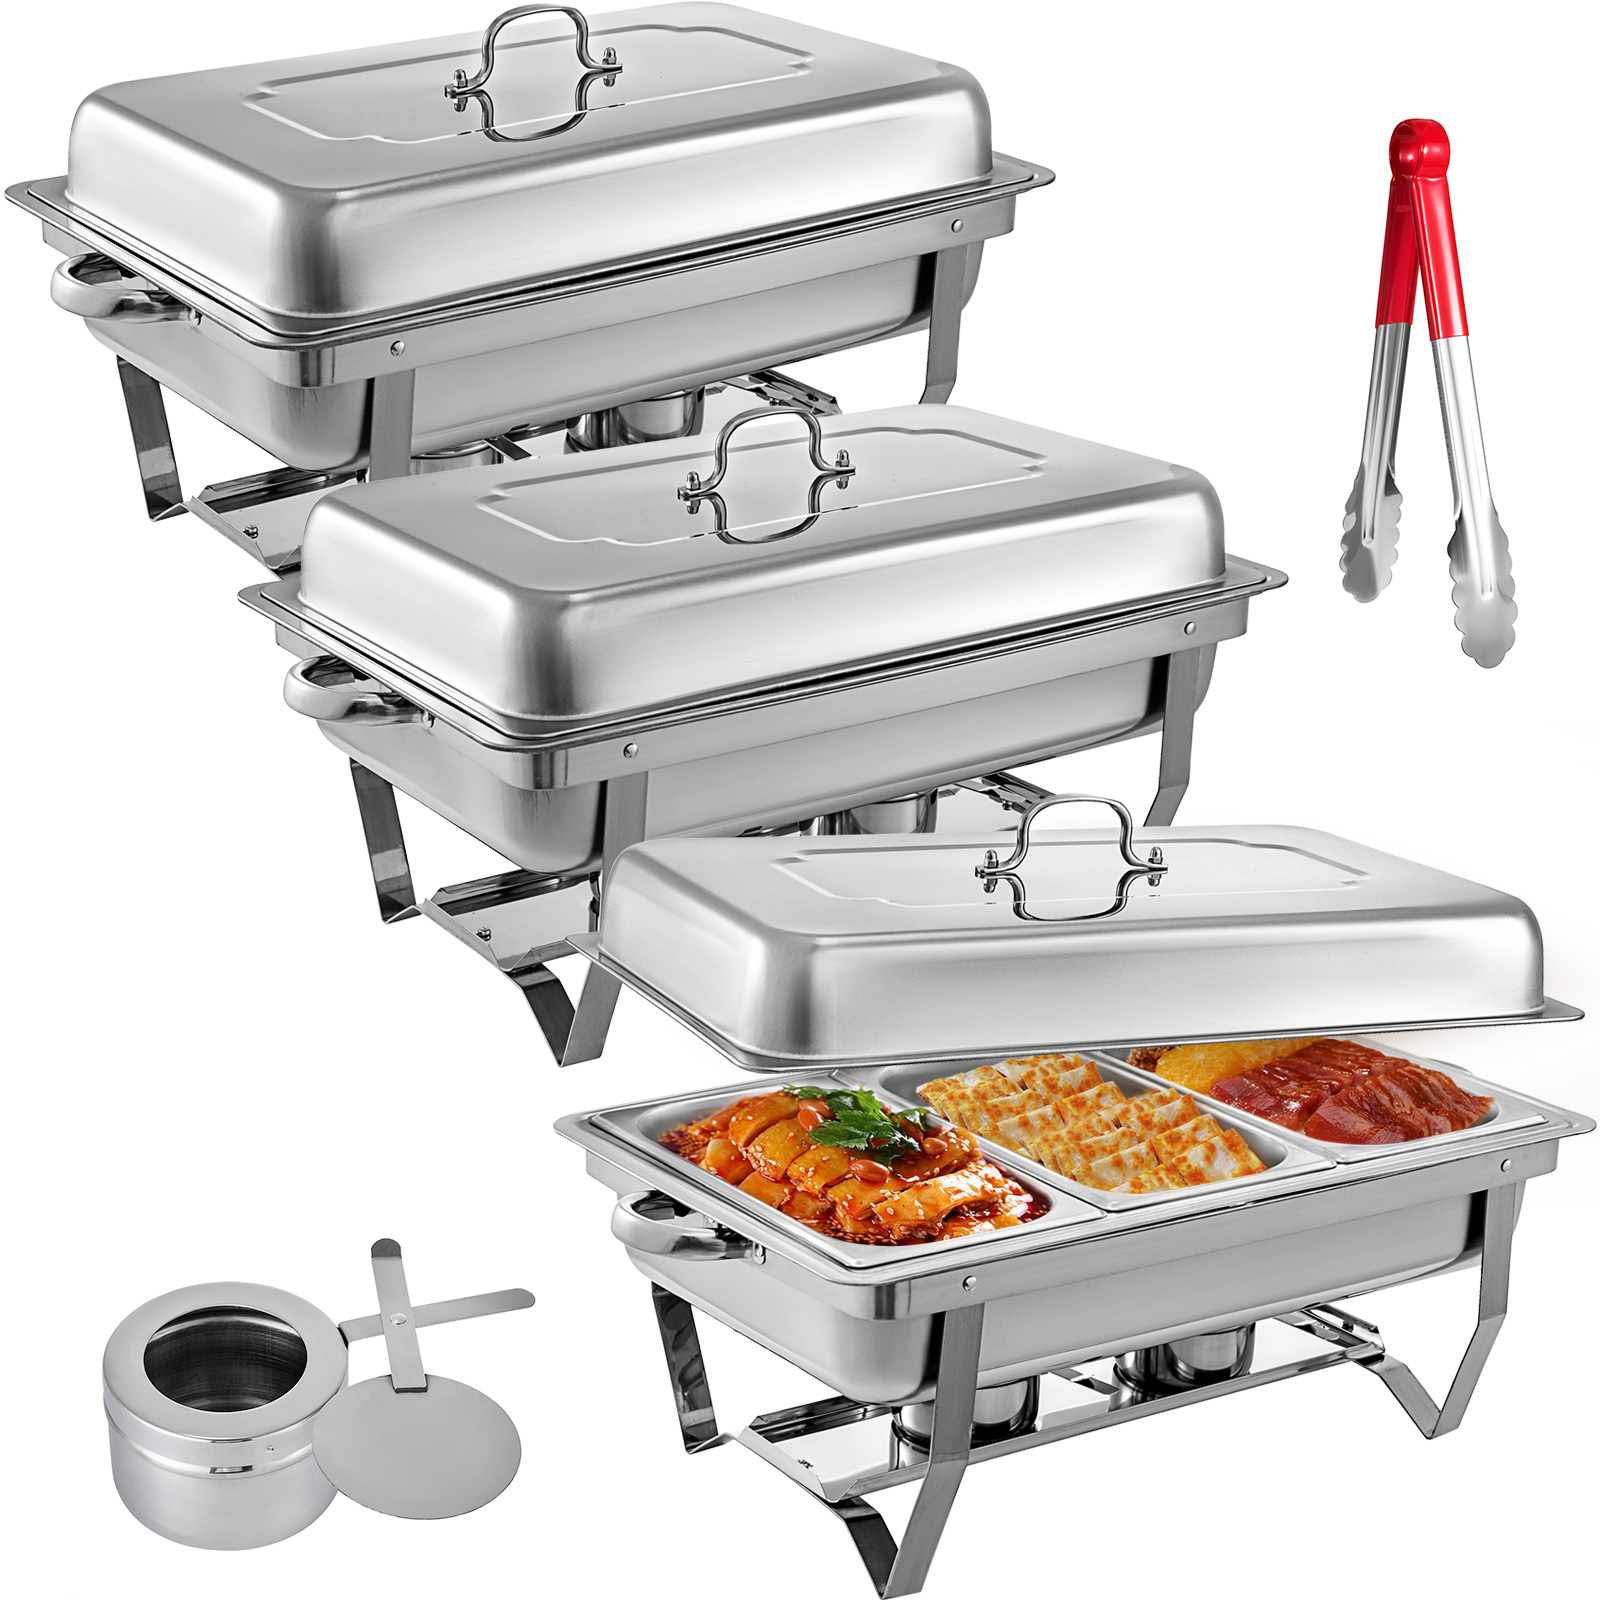 thumbnail 97 - Multi-Stainless-Steel-Chafing-Dish-Bain-Marie-Bow-Catering-Dish-Hotpot-Server